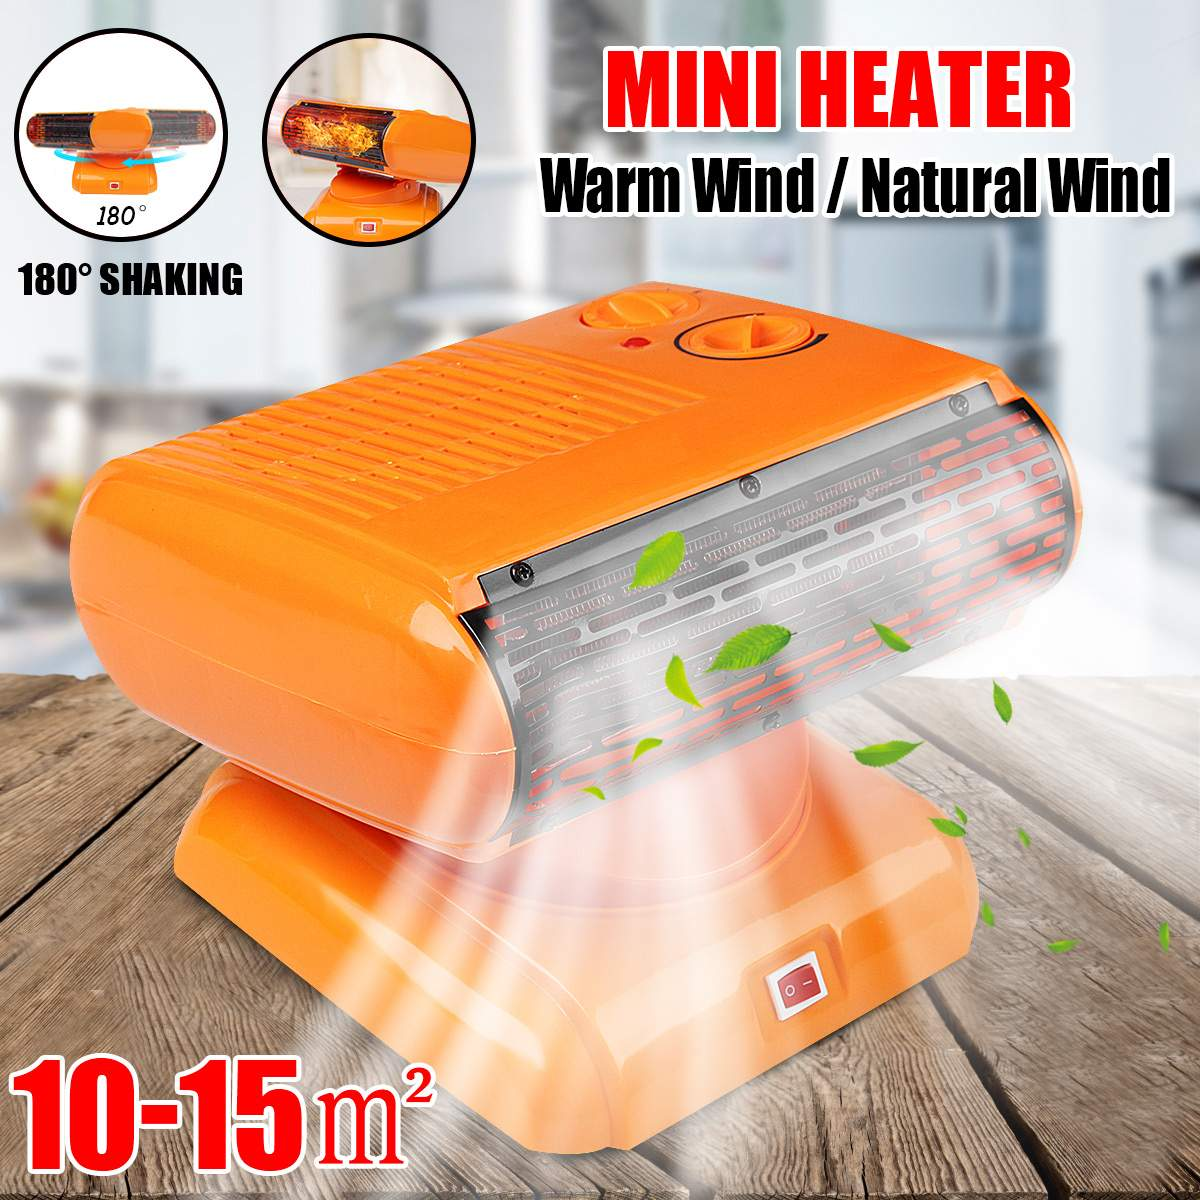 Mini Portable Home Electric Heater Stove Desktop Outlet Air Heating Radiator Kitchen Bar Bathroom Hotel Travel Handy WarmerMini Portable Home Electric Heater Stove Desktop Outlet Air Heating Radiator Kitchen Bar Bathroom Hotel Travel Handy Warmer